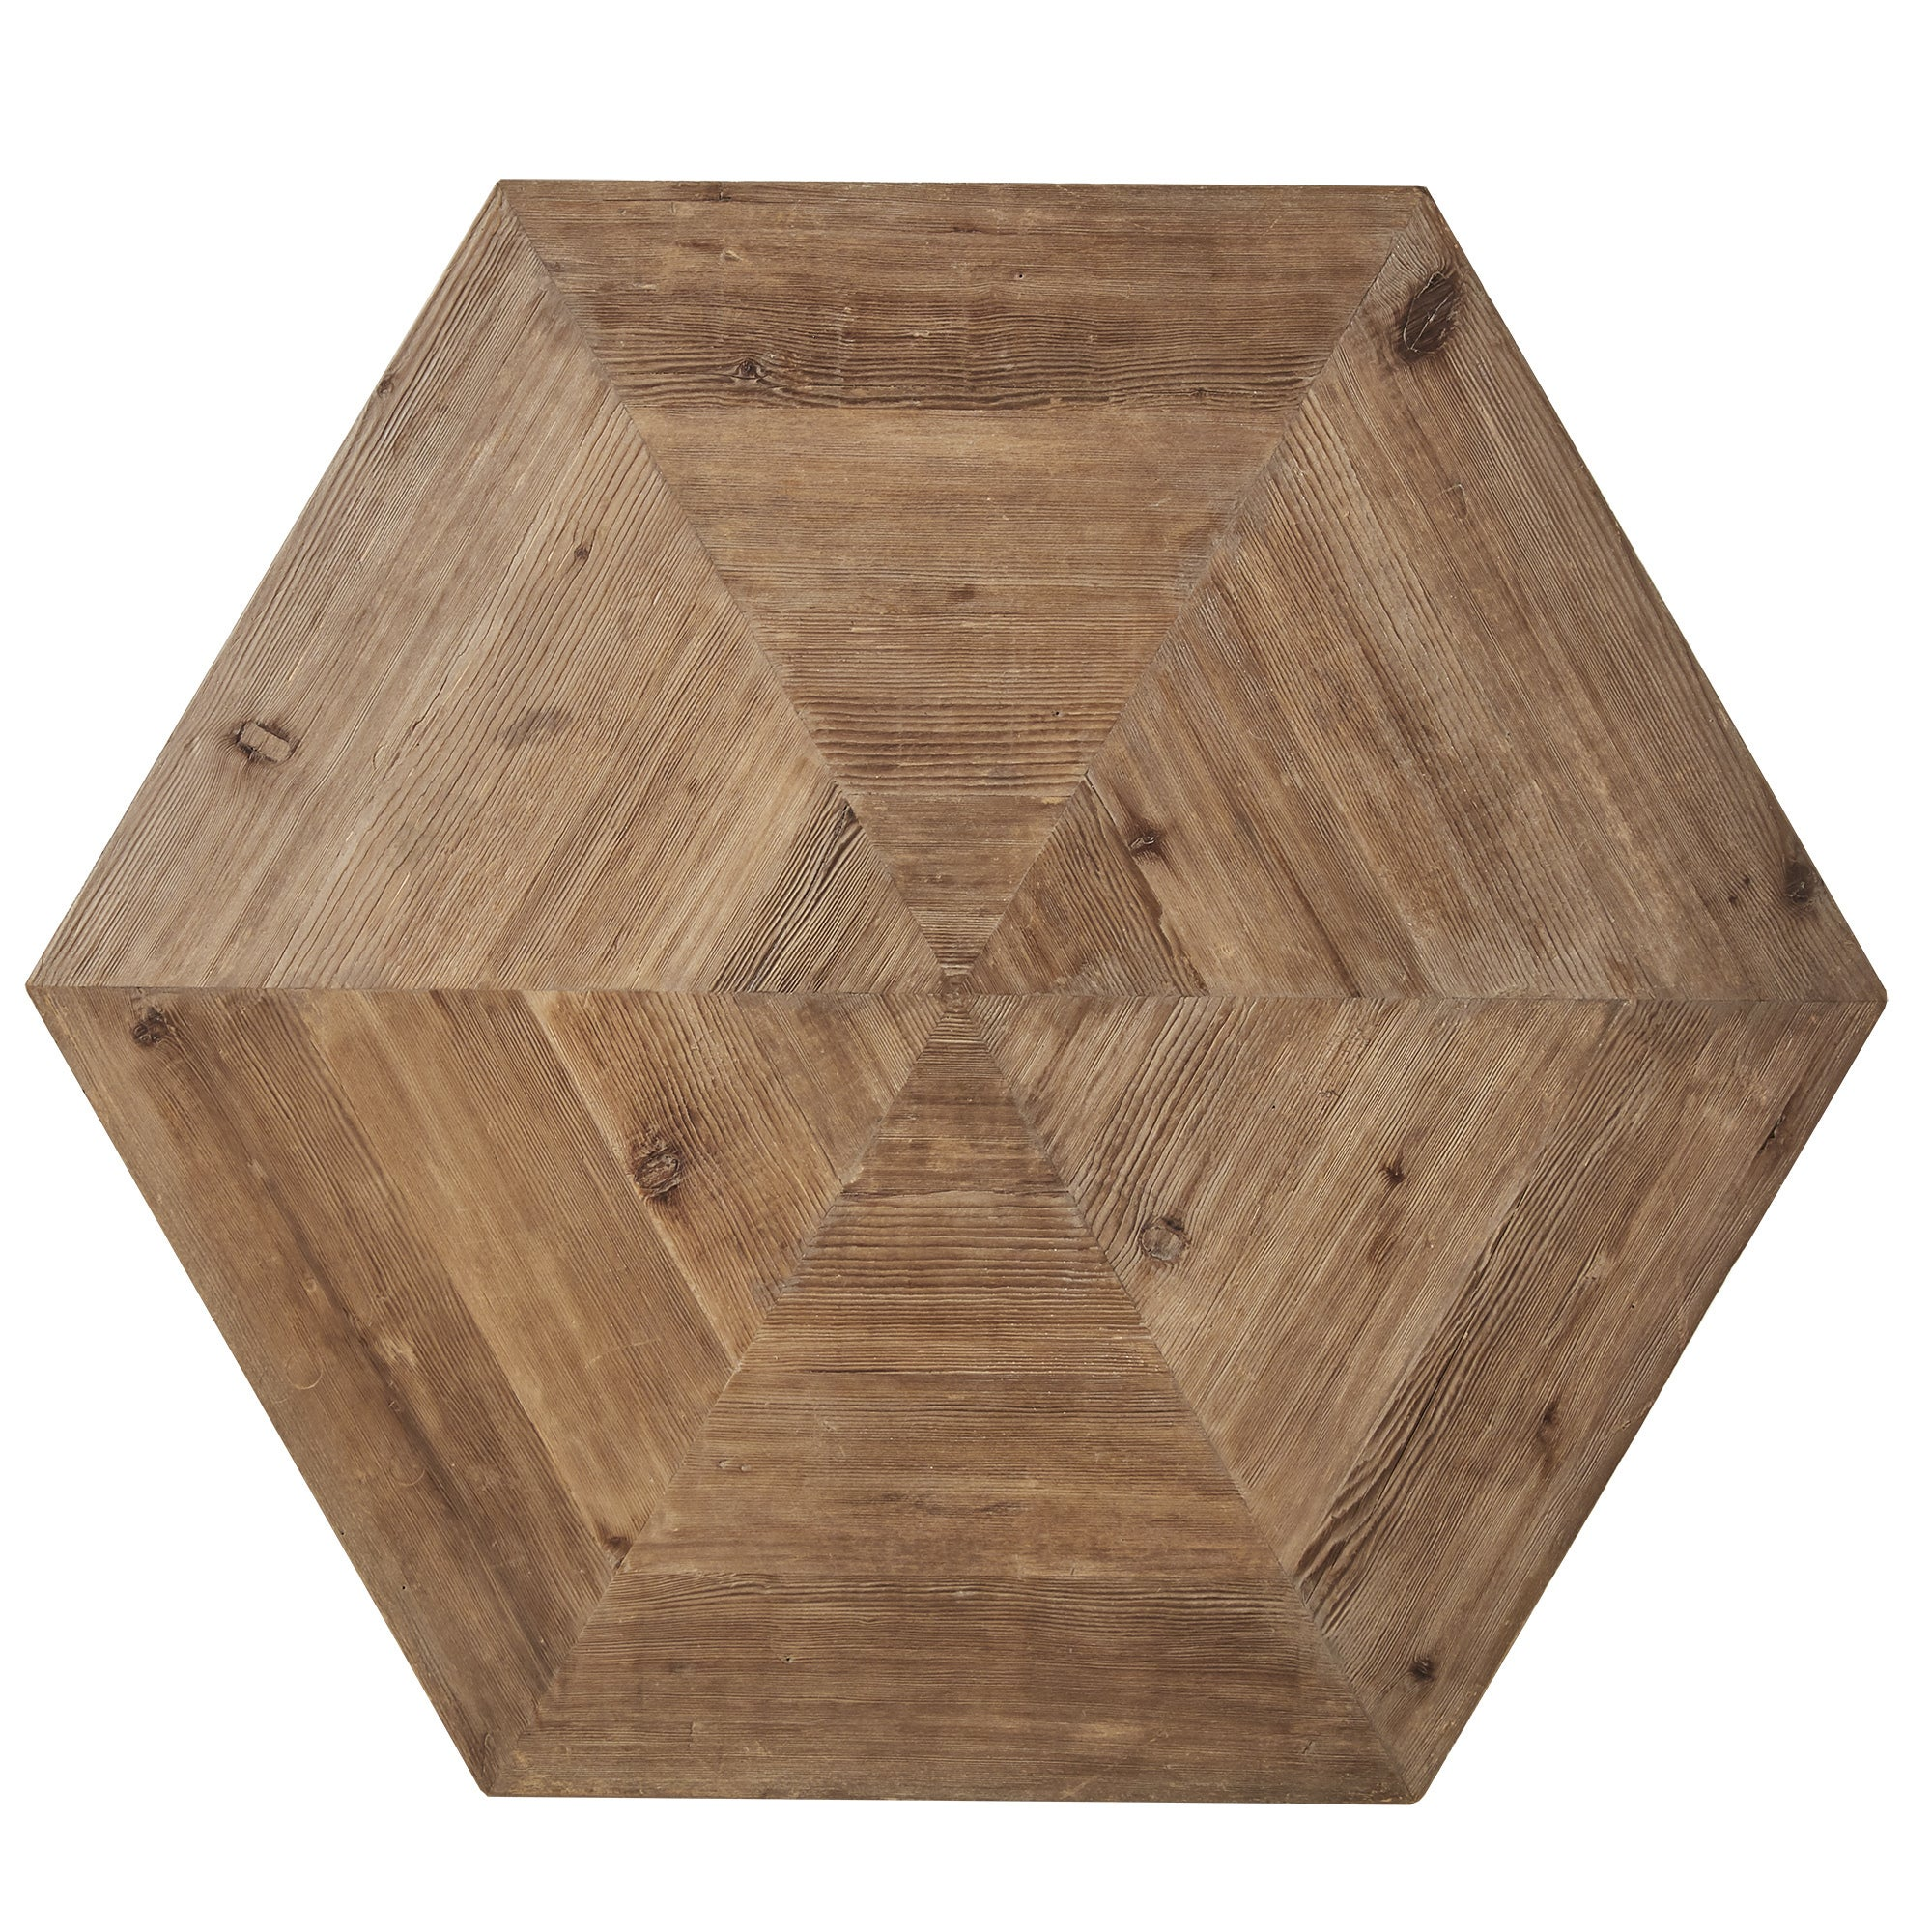 Bailey Contemporary Wood and Brass Accent Tables by iNSPIRE Q Artisan -  Free Shipping Today - Overstock.com - 25490633